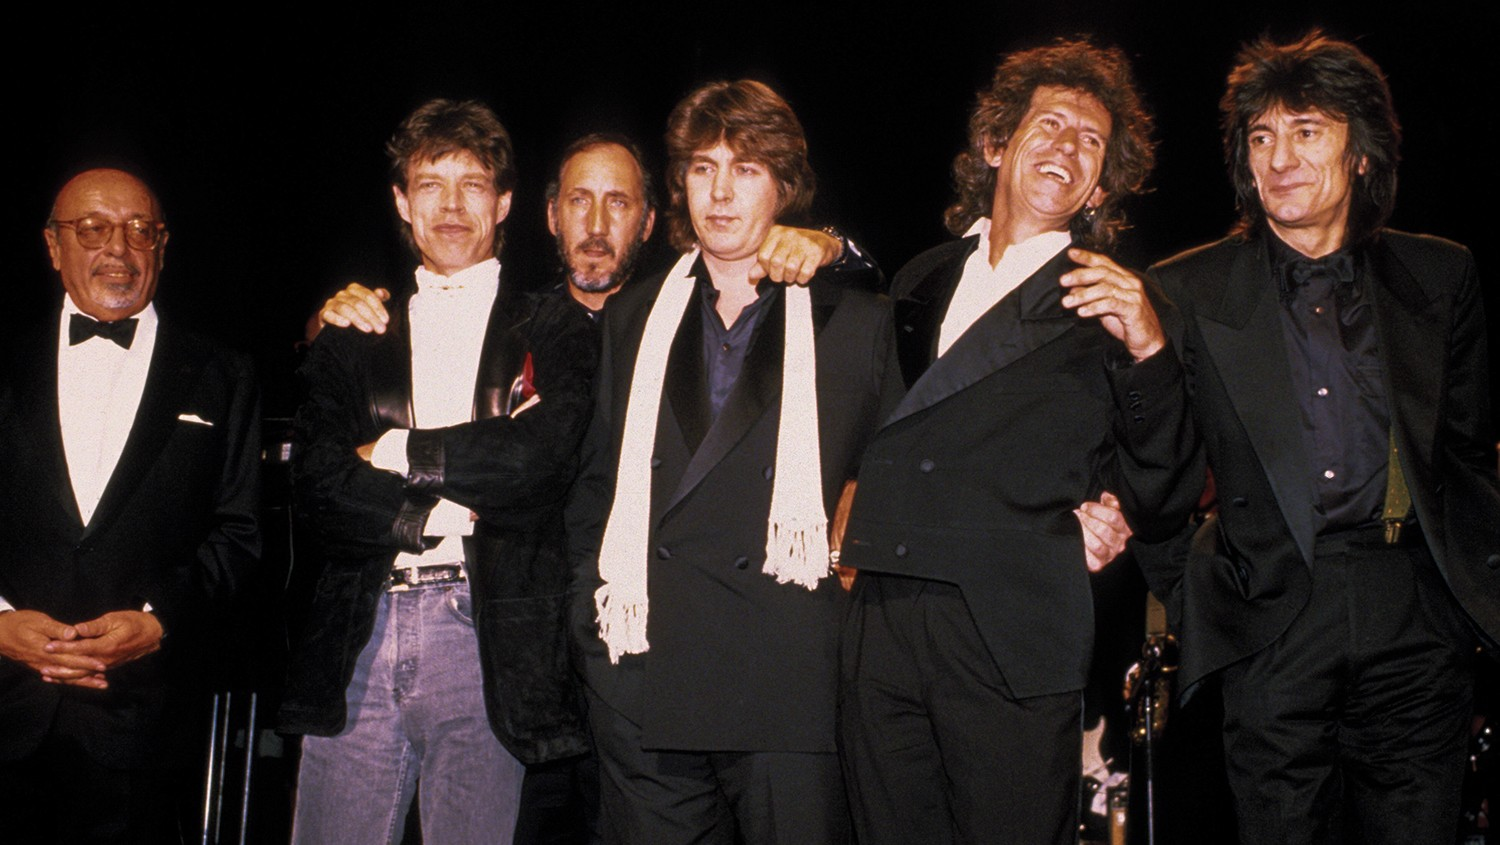 From left: Ertegun, Mick Jagger, Pete Townshend, Mick Taylor, Keith Richards and Ronnie Wood at the 1989 Rock Hall ceremony.